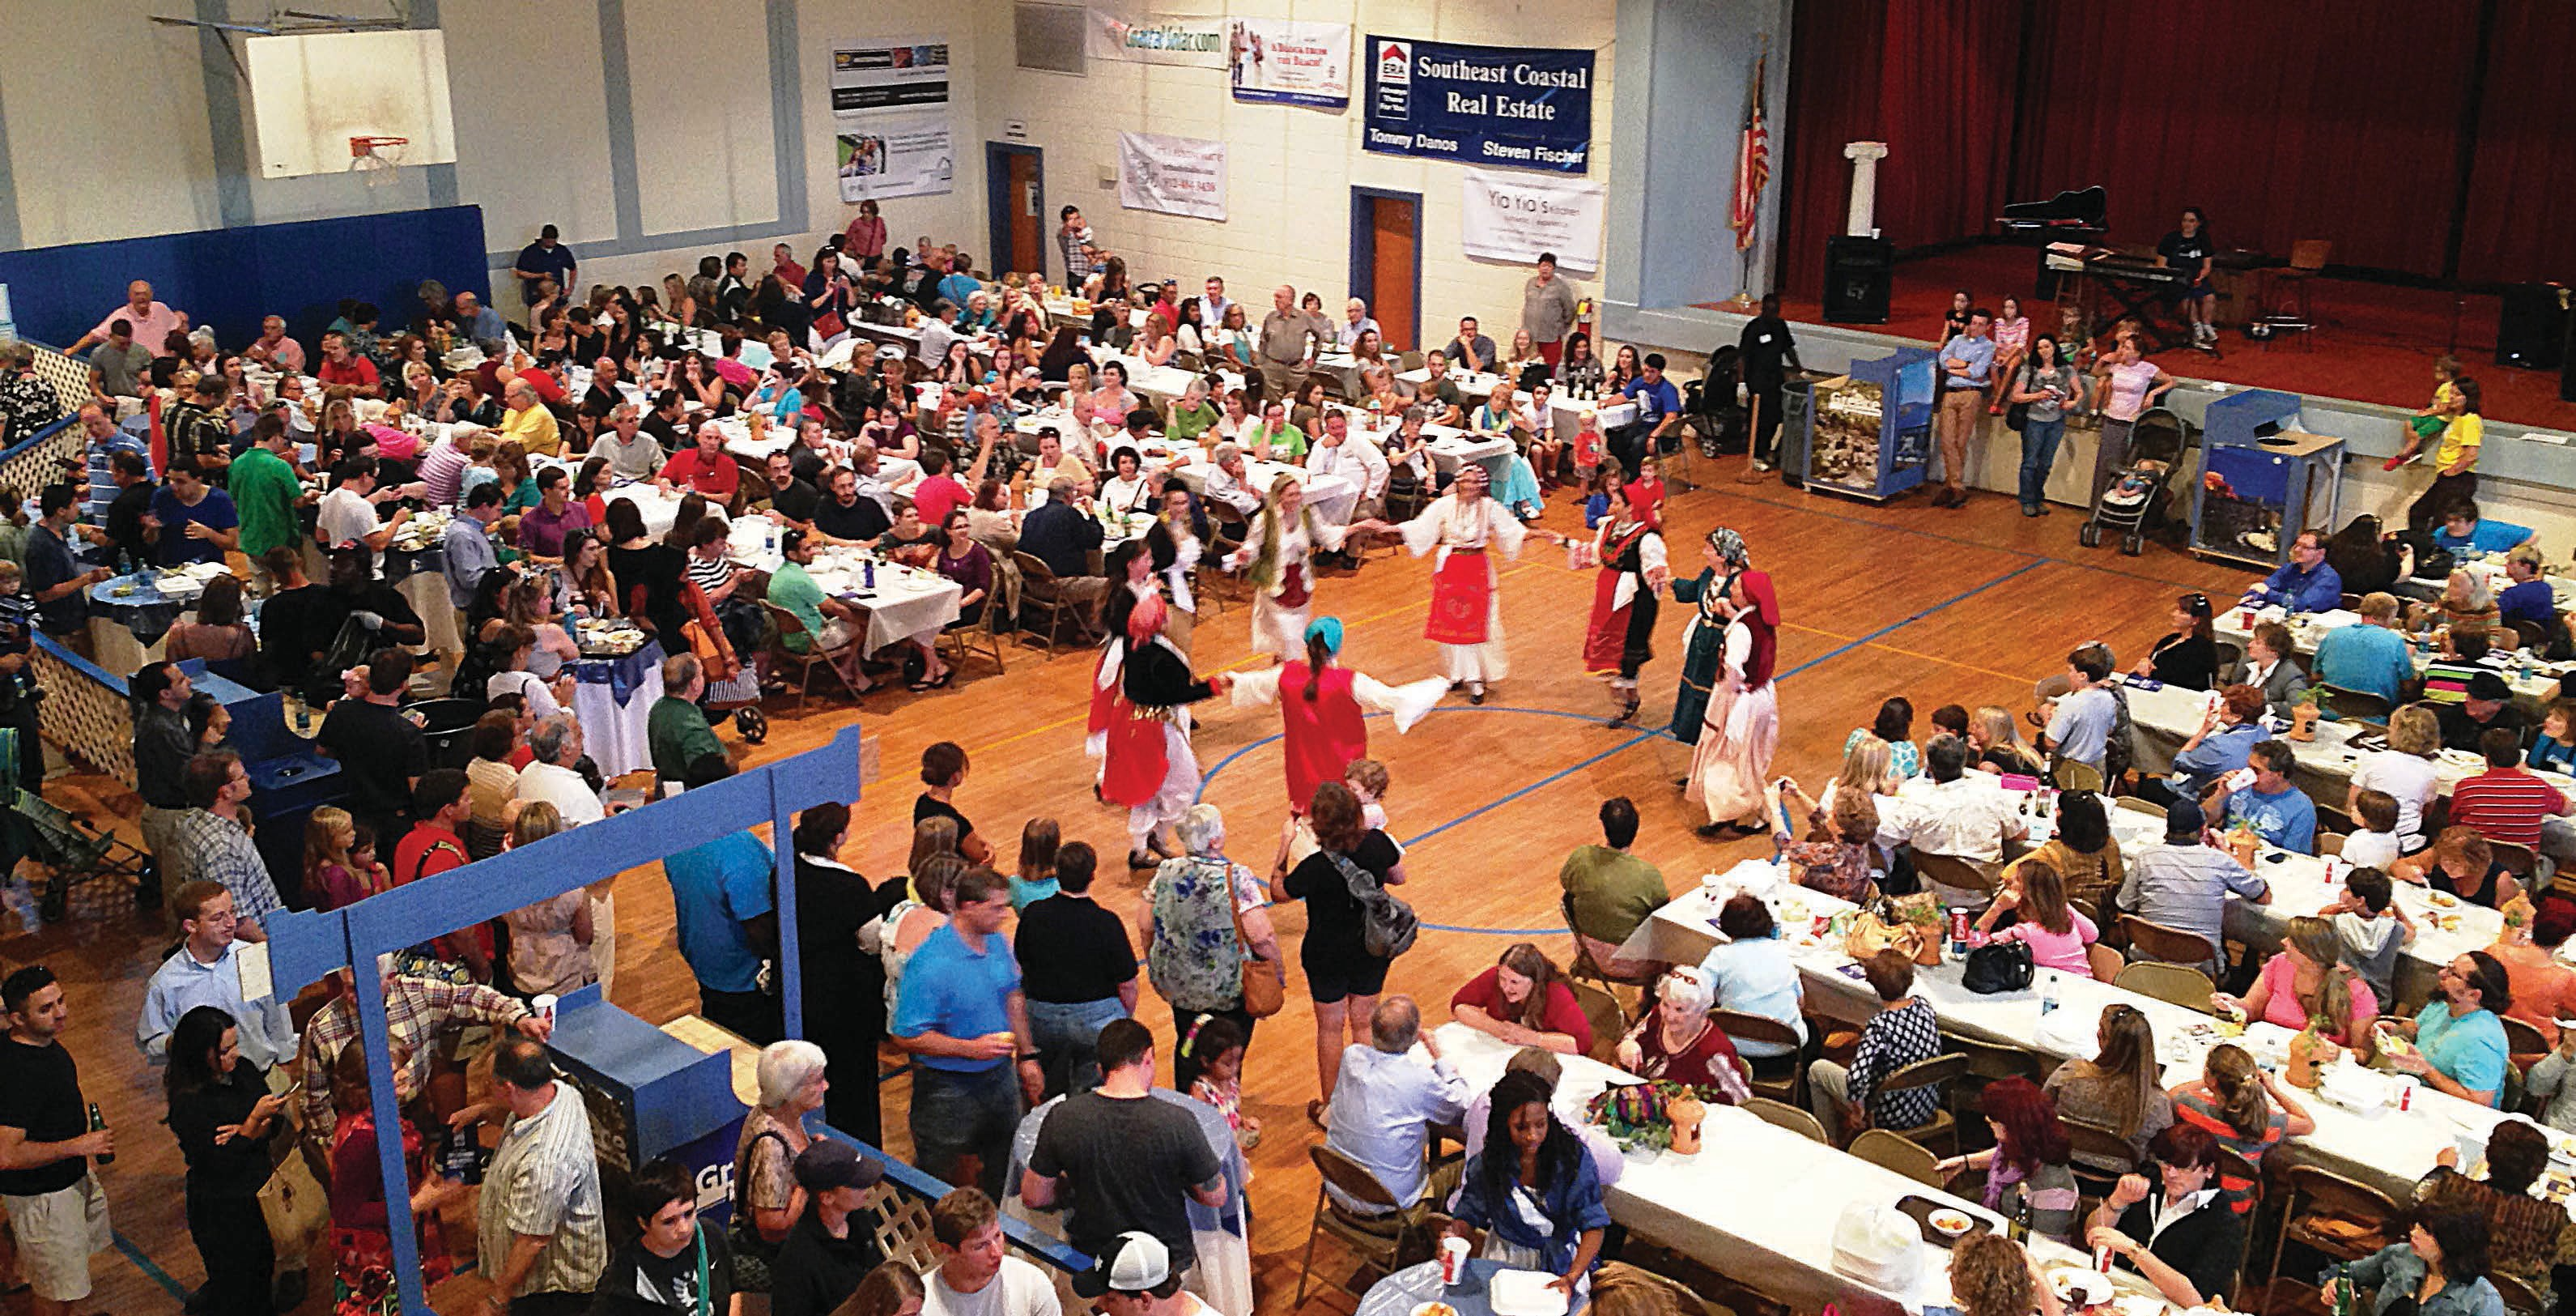 Participants at the Greek Festival